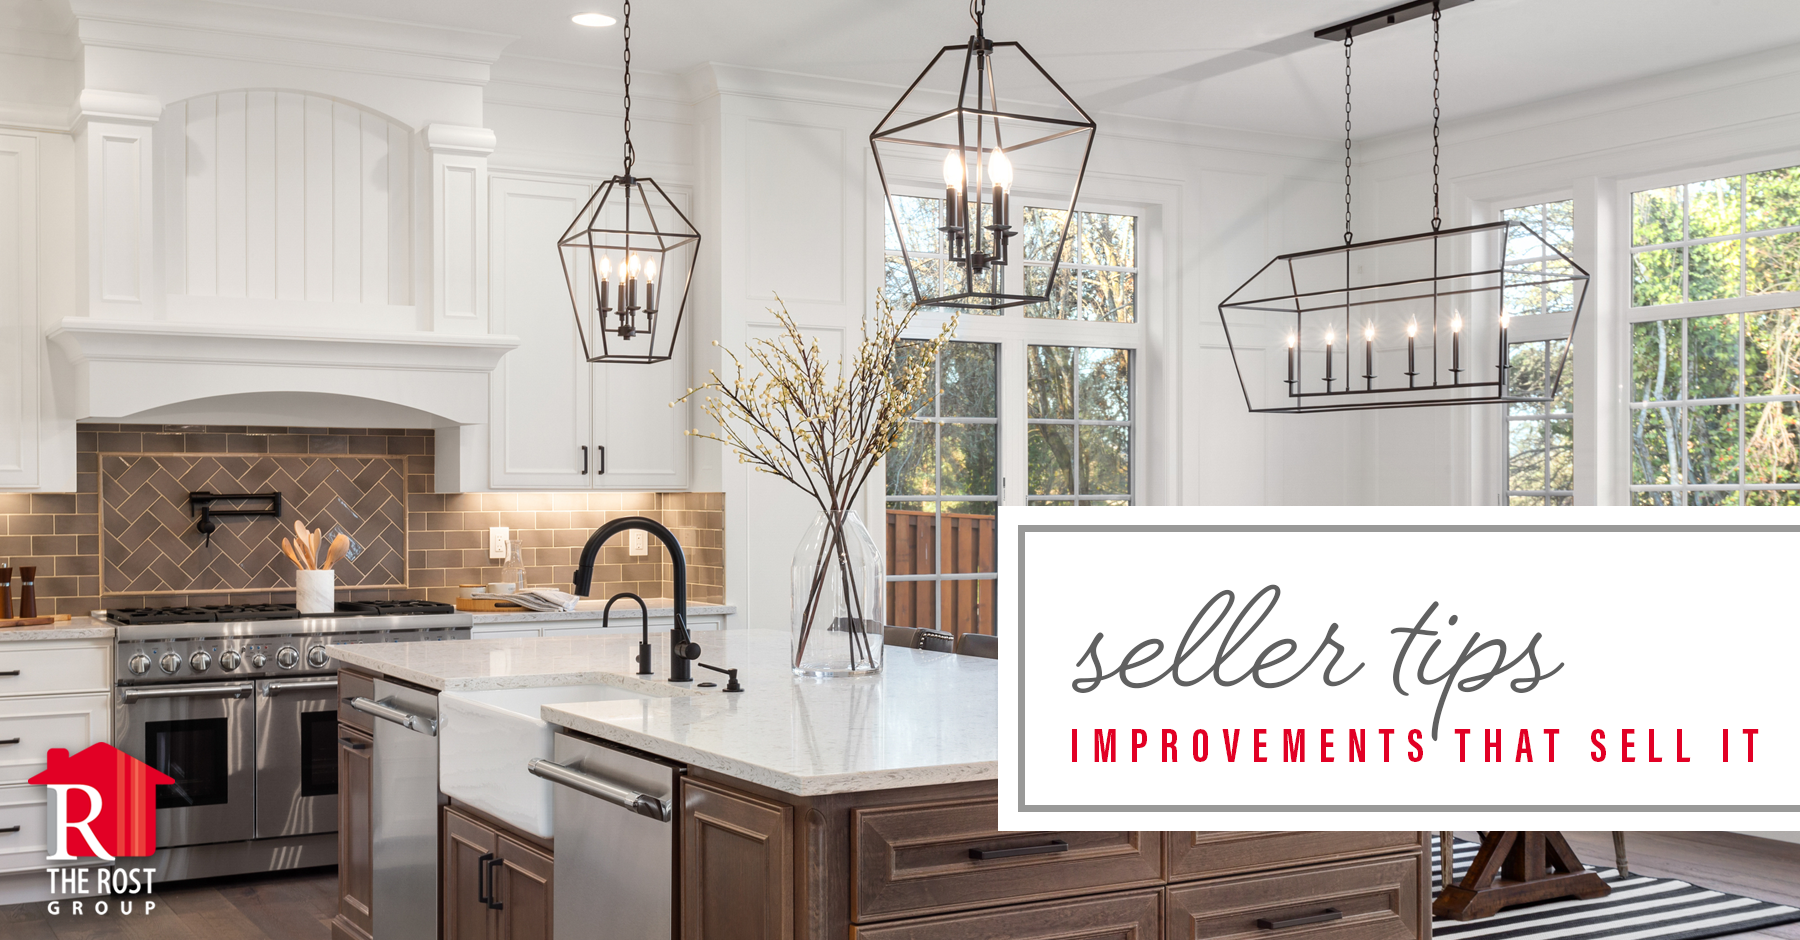 These improvements will help sell your house